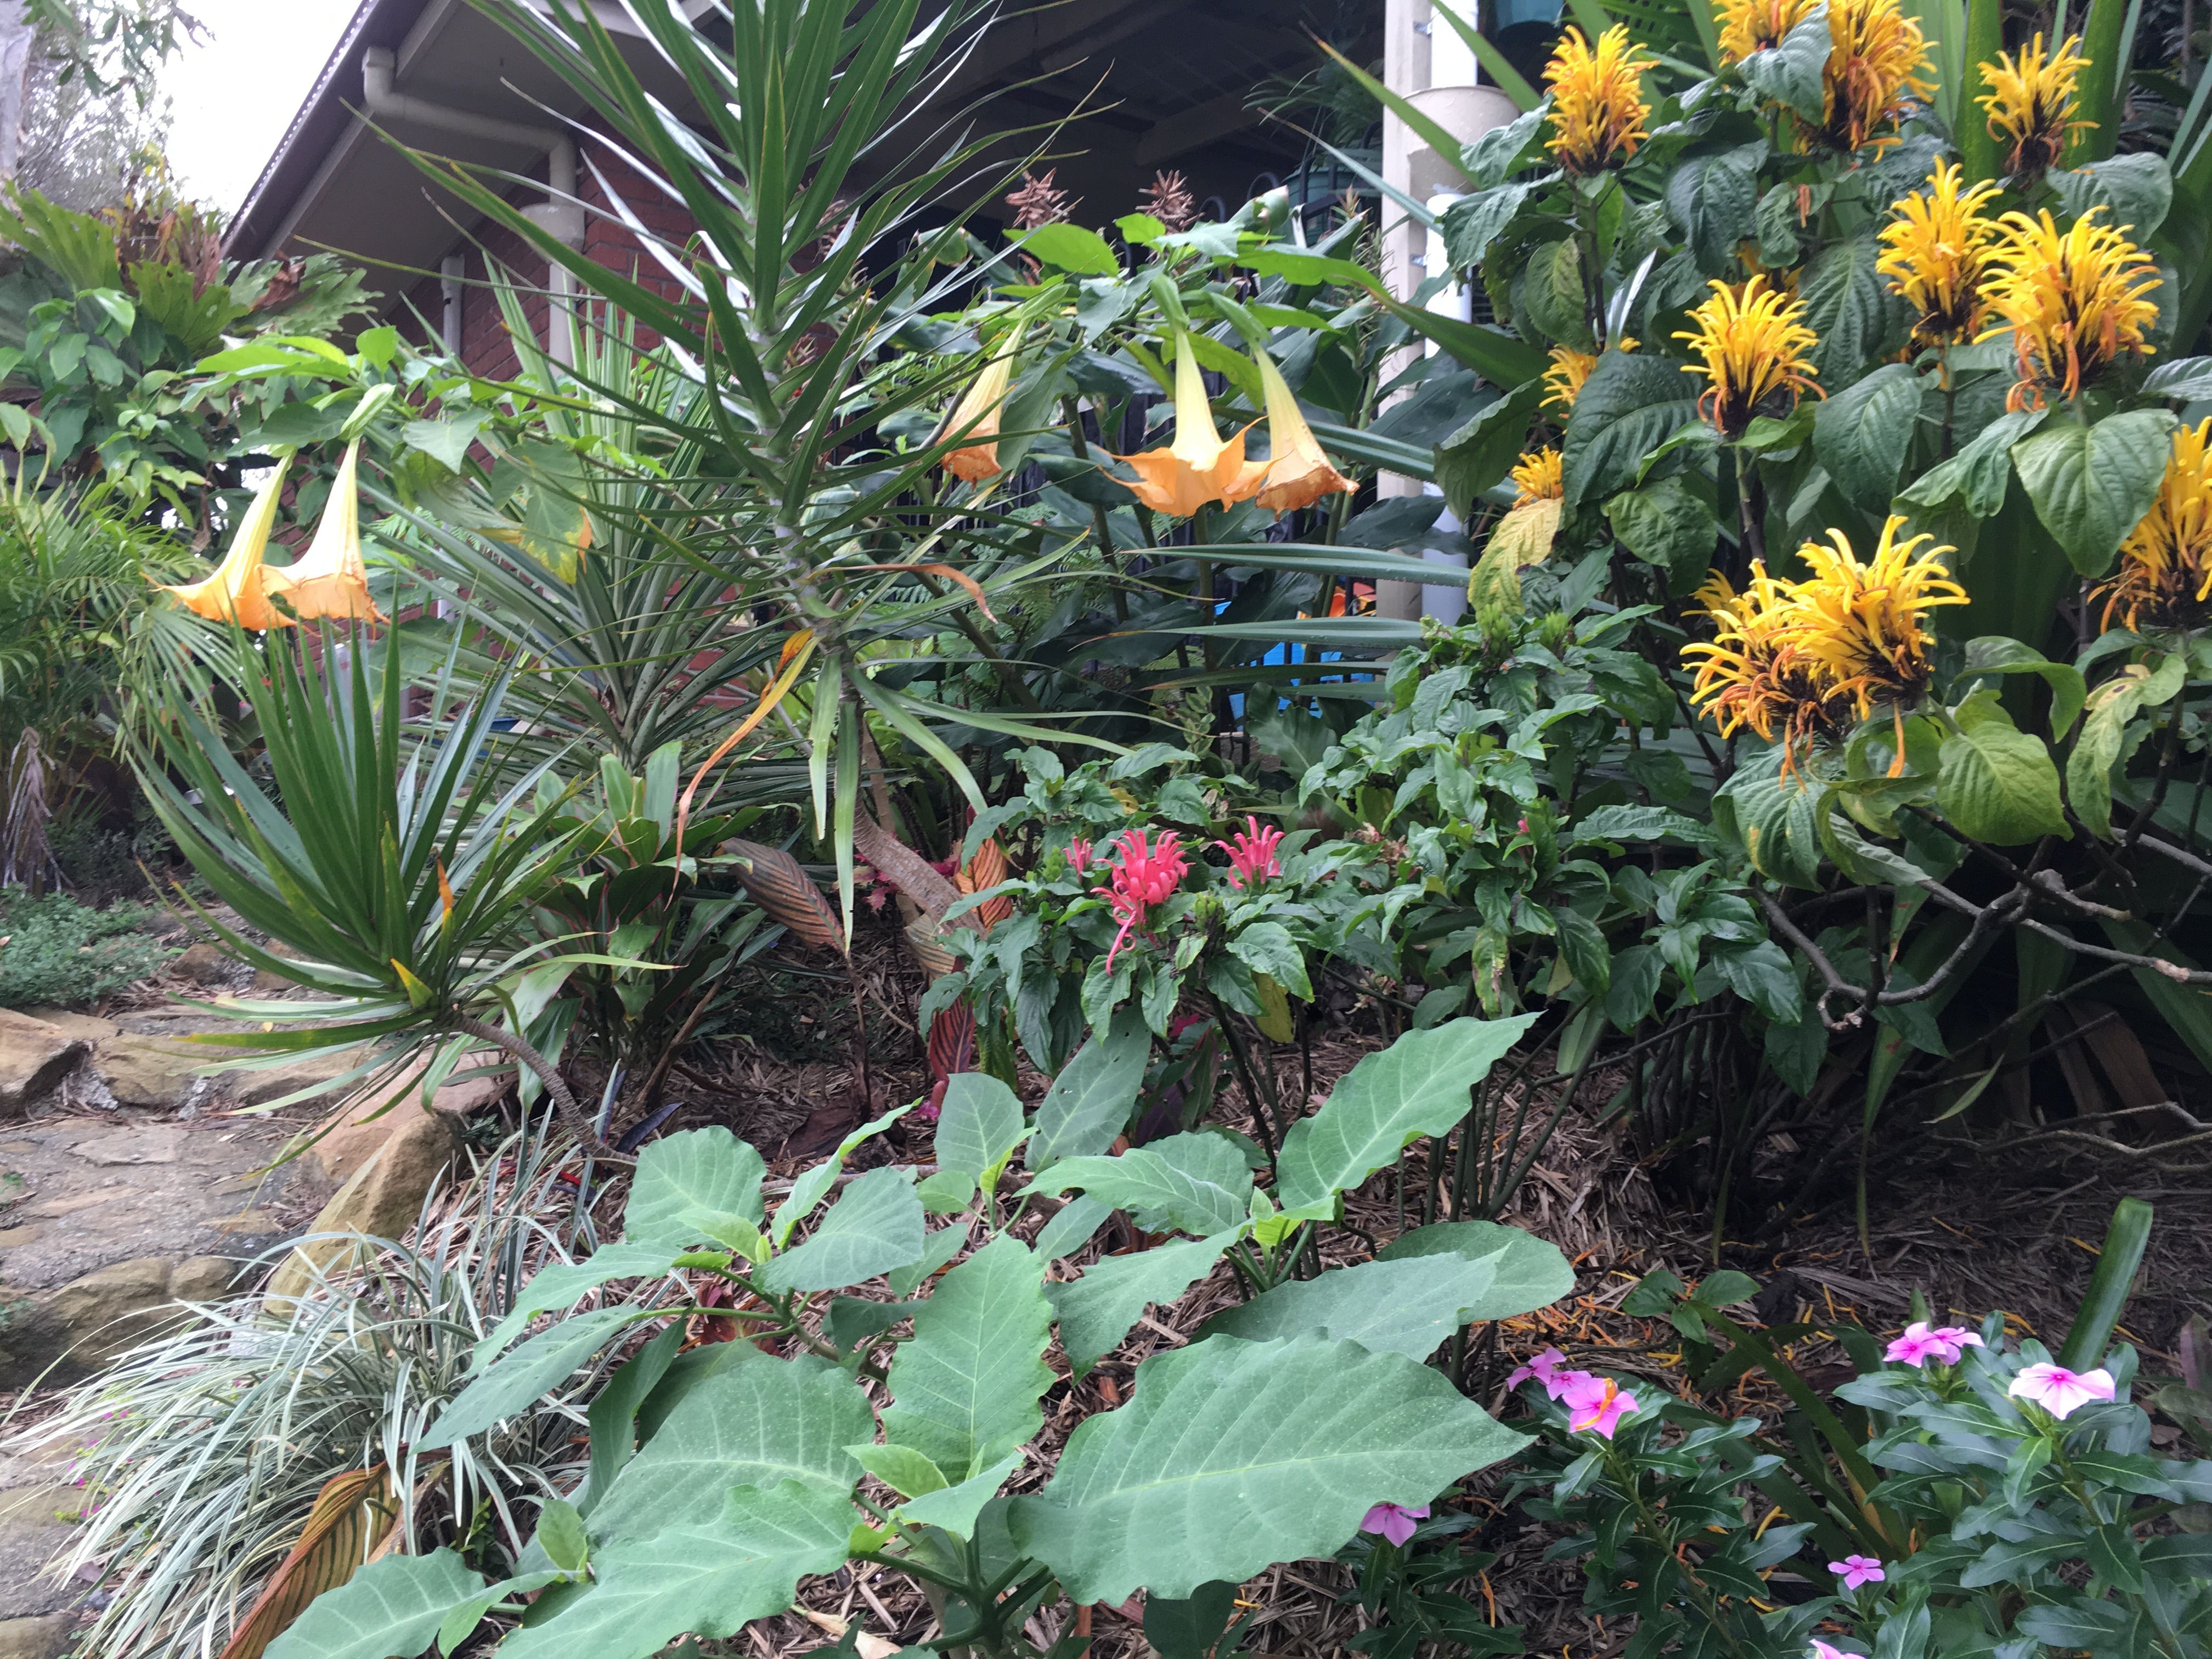 Pin by letty gonzalez on tropical gardens   Pinterest   Tropical ...